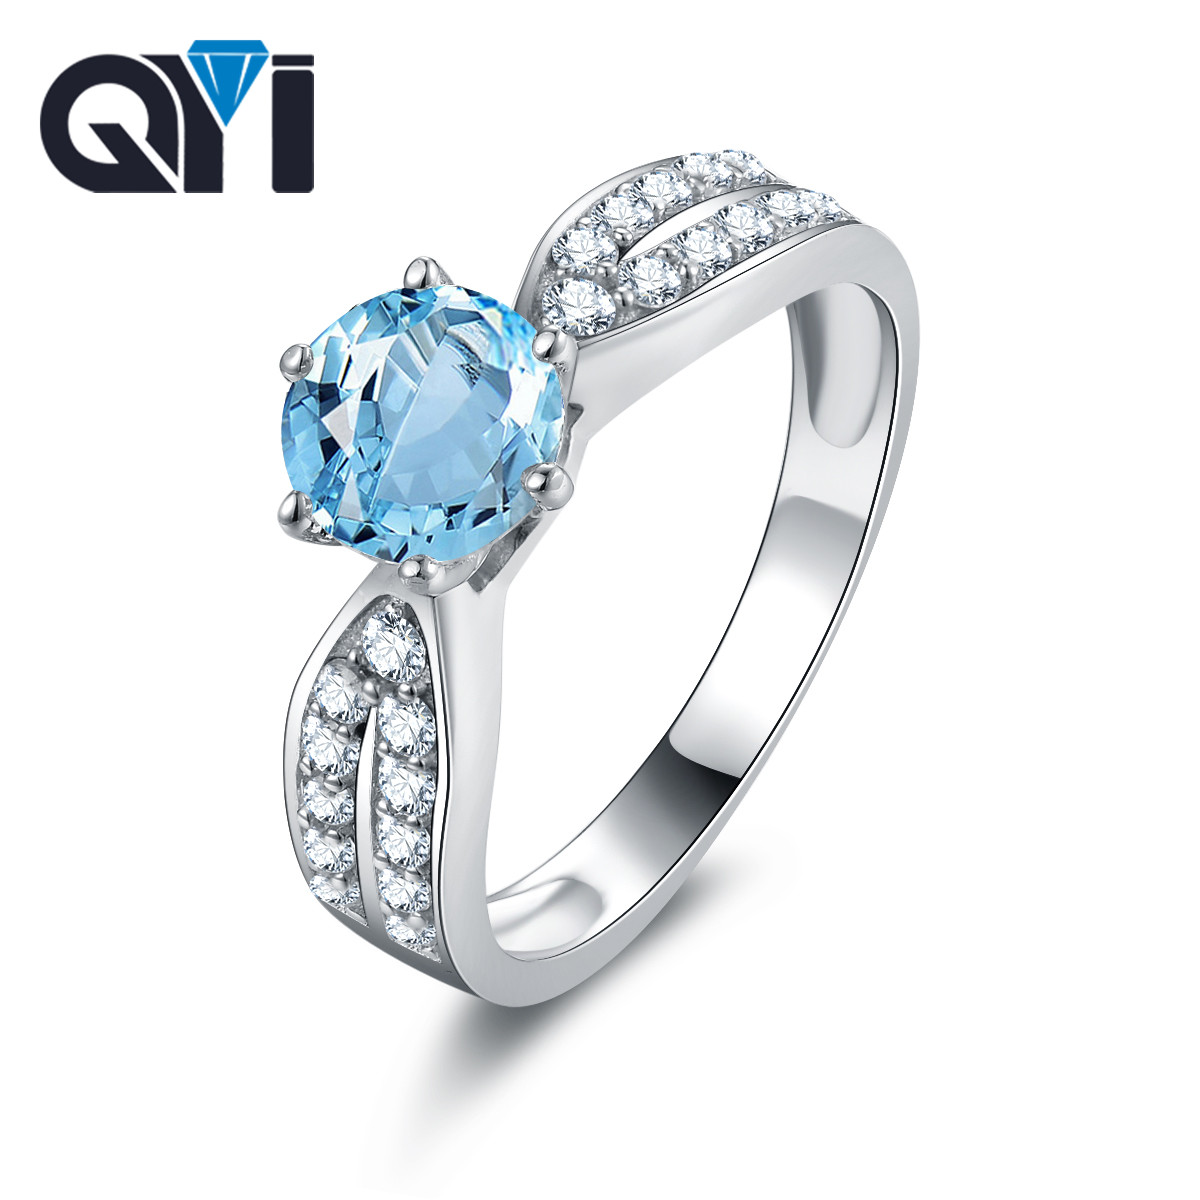 QYI Genuine 925 Sterling Silver 1.25ct Natural Sky Blue Topaz Engagement Ring Women Wedding Colored stones JewelryQYI Genuine 925 Sterling Silver 1.25ct Natural Sky Blue Topaz Engagement Ring Women Wedding Colored stones Jewelry